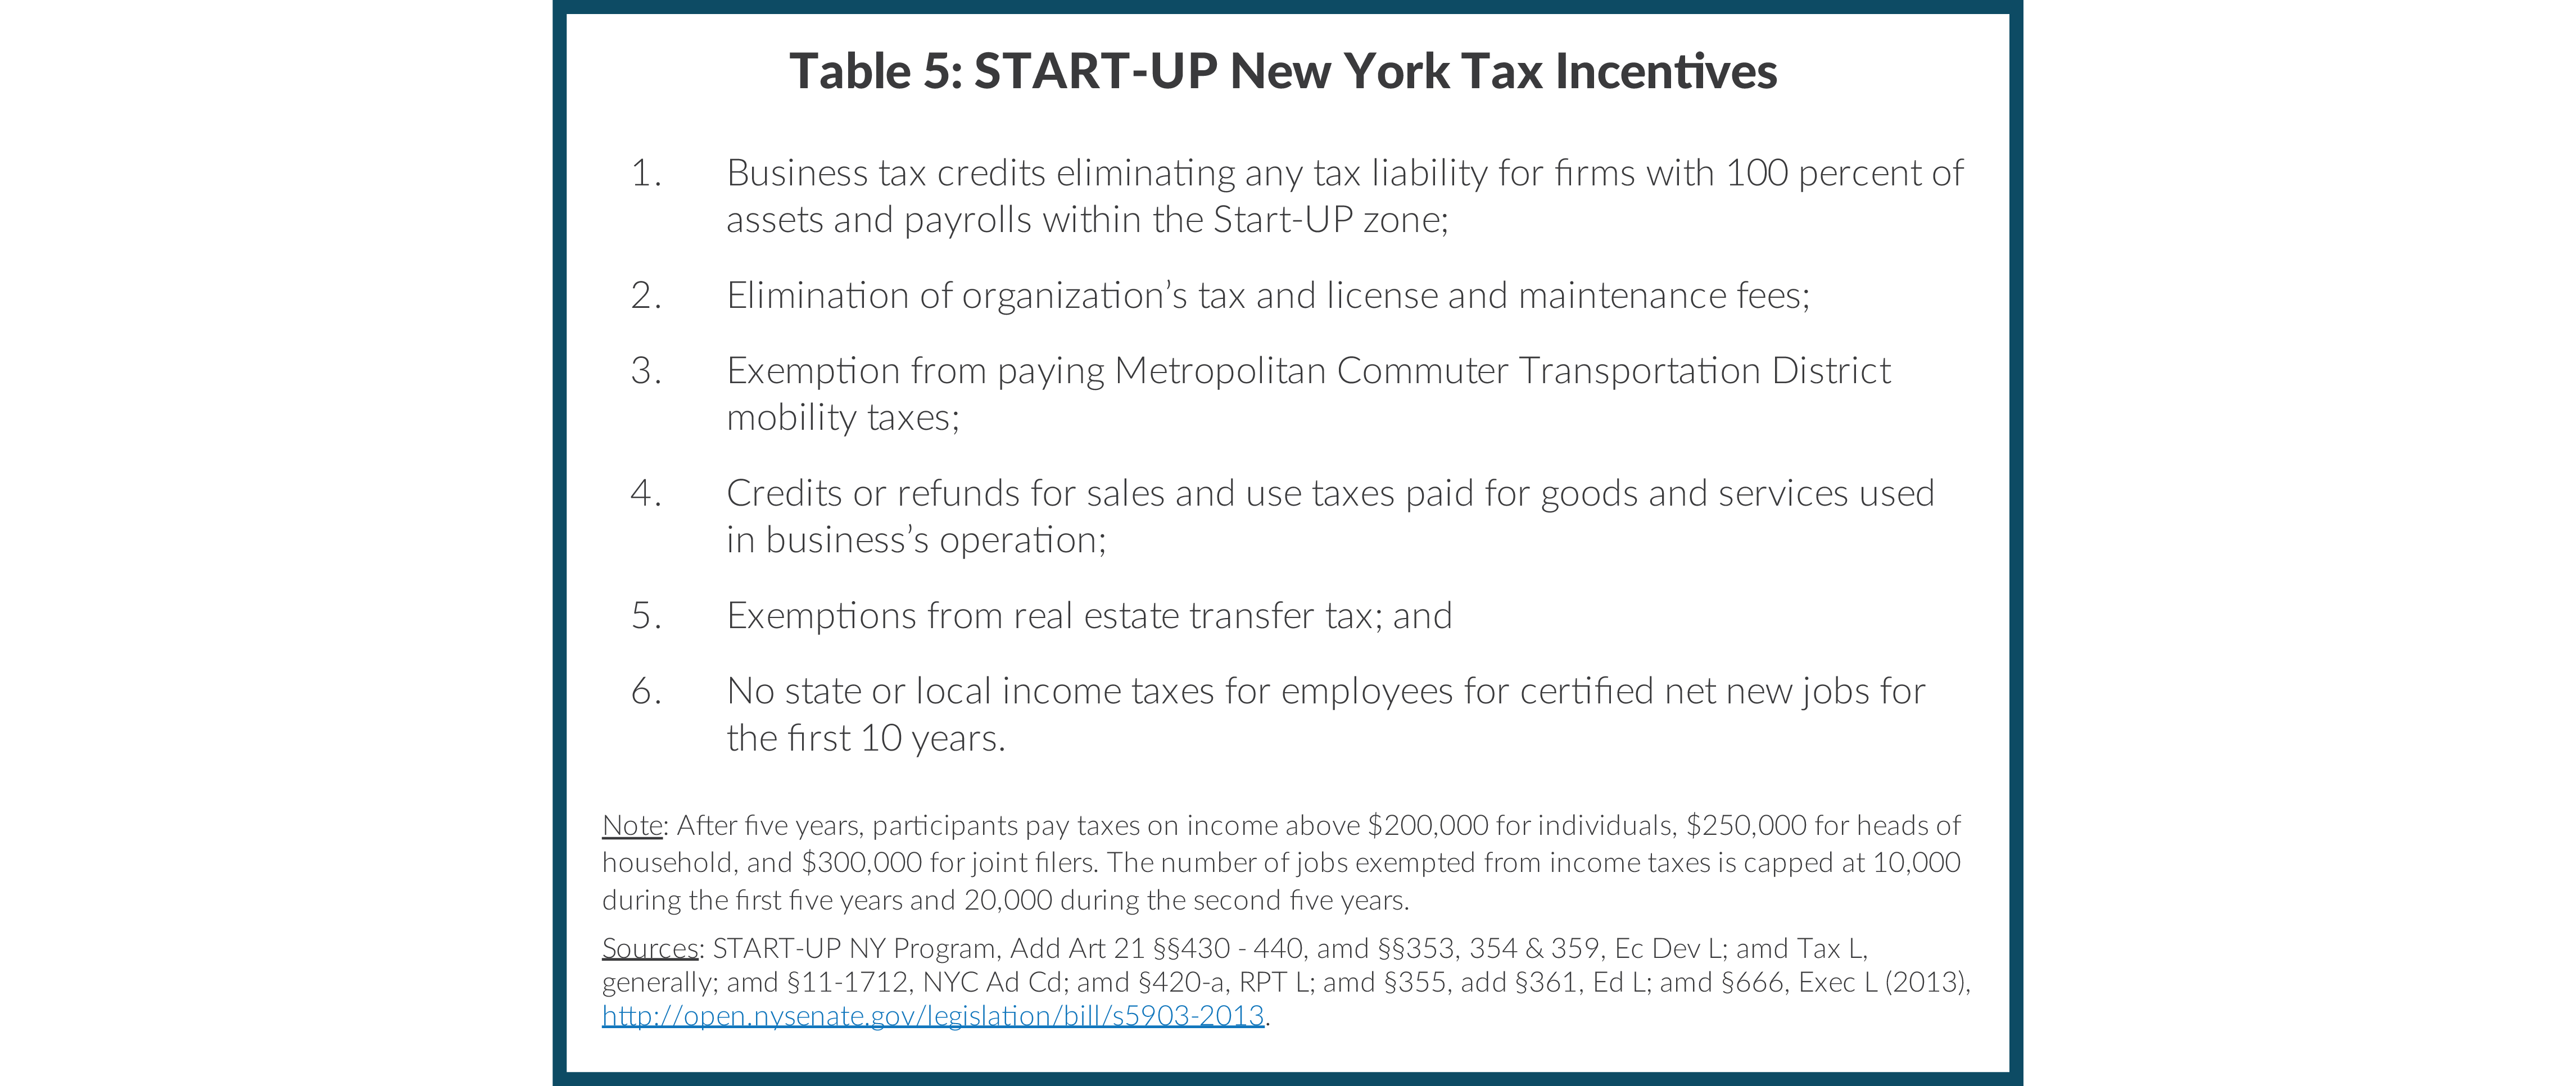 Table 5: START-UP New York Tax Incentives